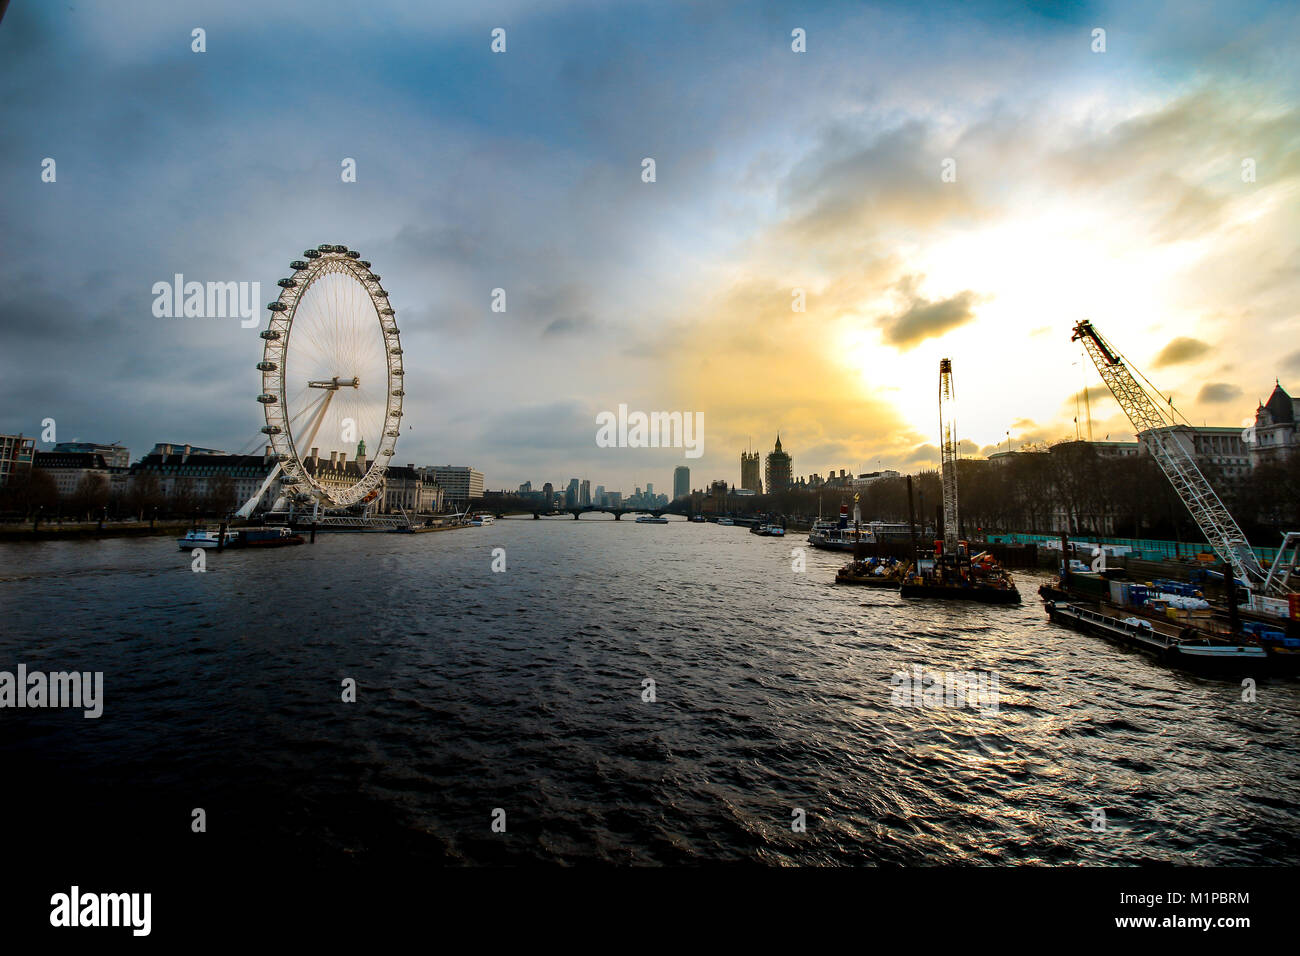 View from Golden Jubilee Bridge over the River Thames with the London Eye, London, England - Stock Image